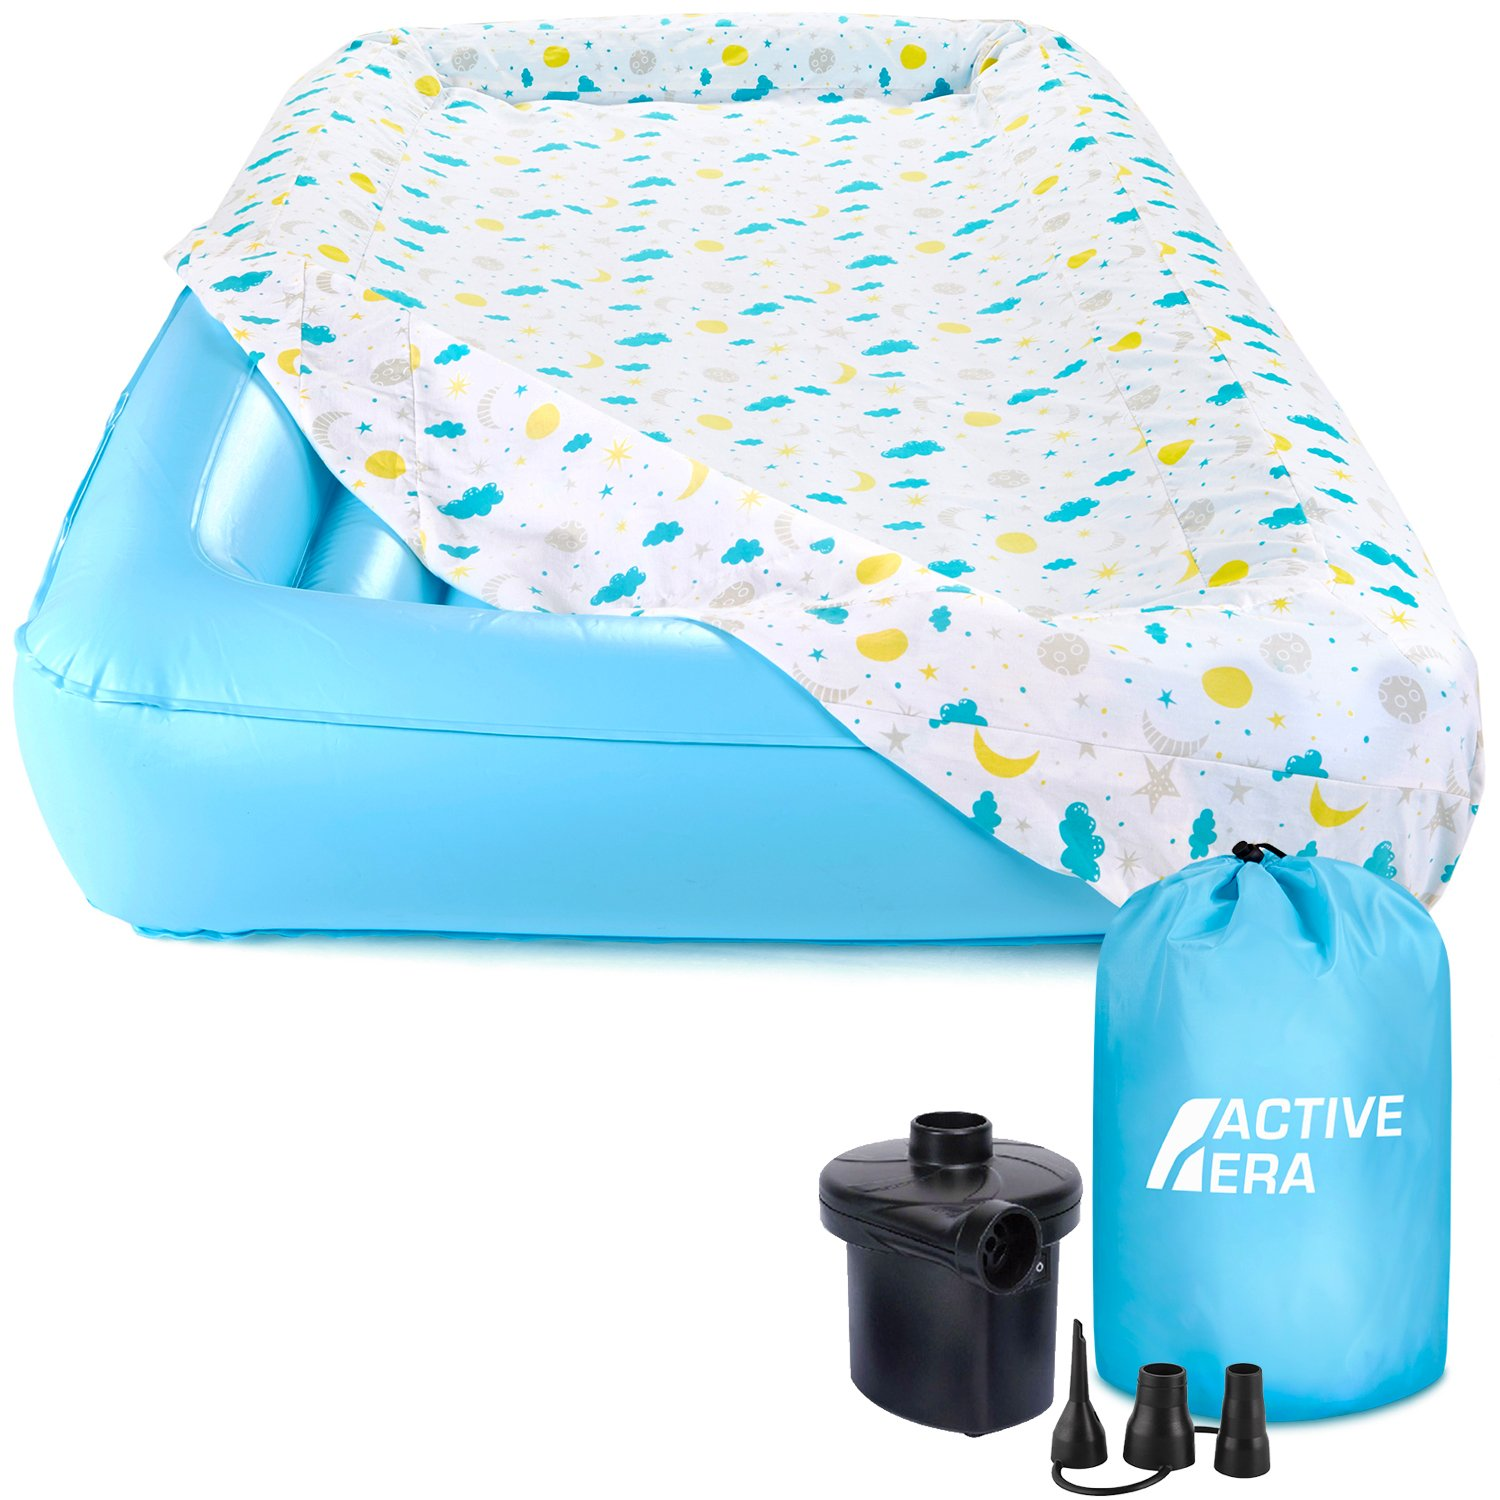 Active Era Kids Air Mattress - Portable Inflatable Travel Bed